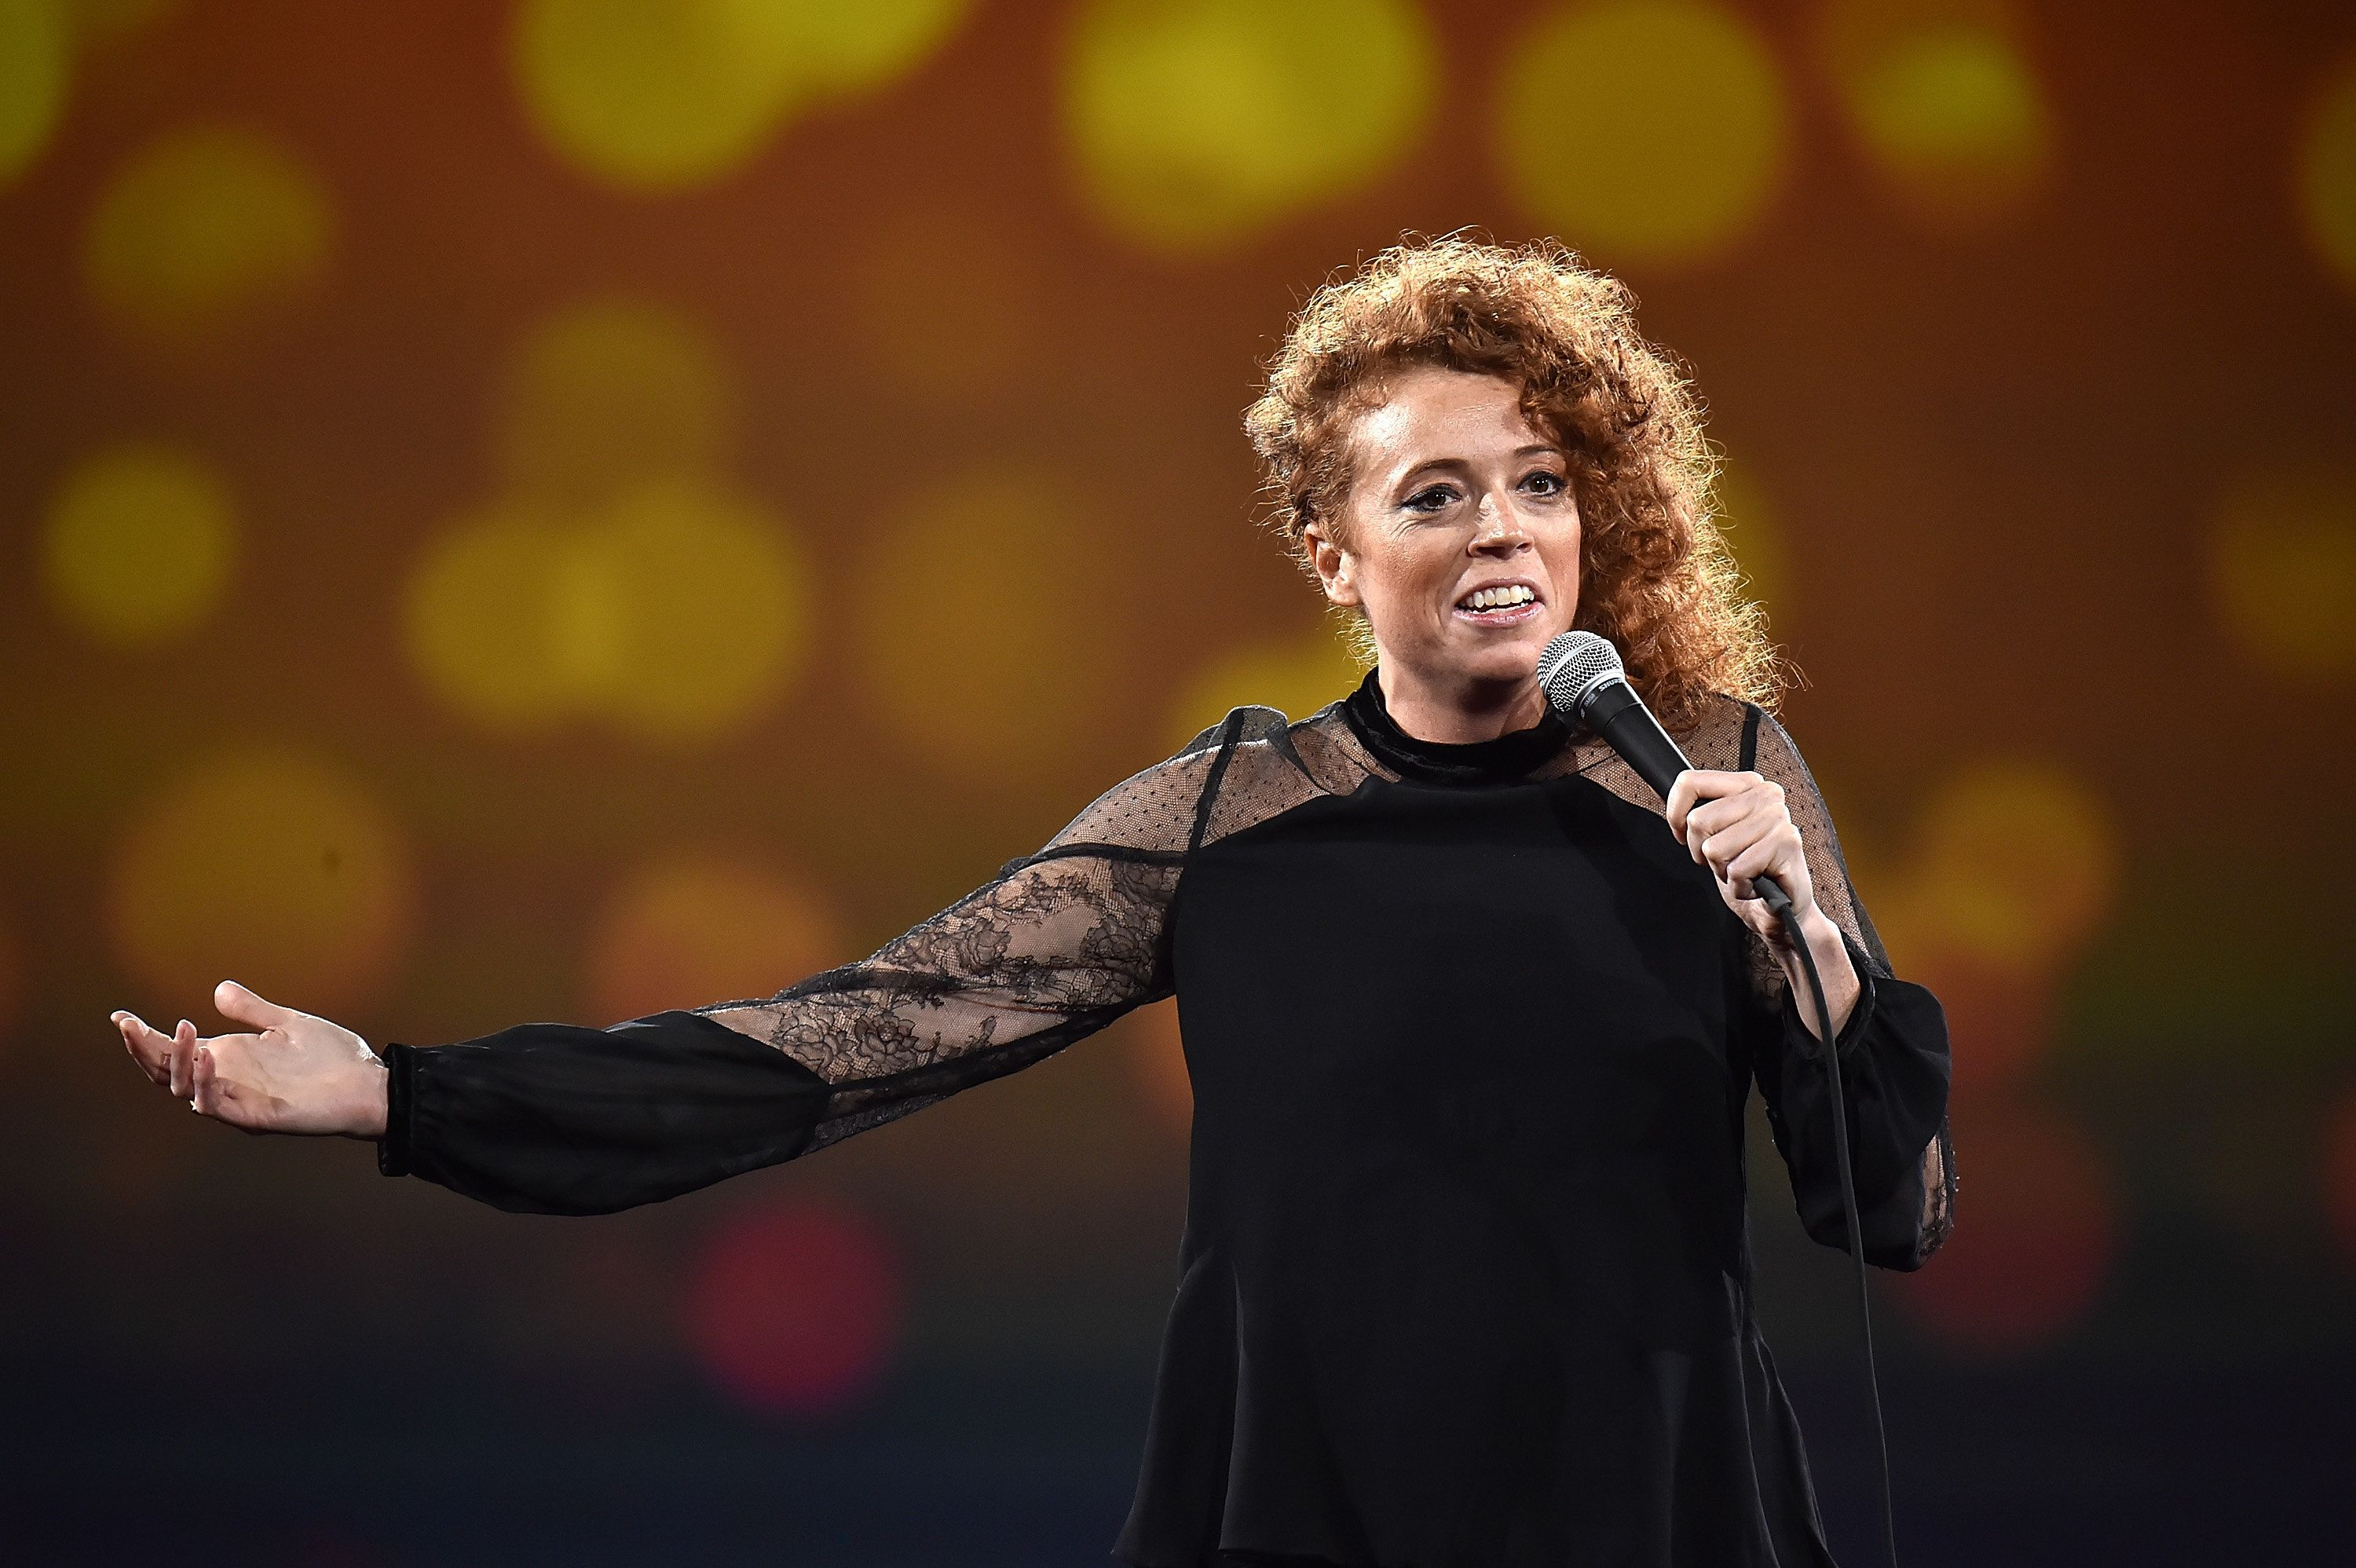 NEW YORK, NY - MAY 14:  Michelle Wolf performs on stage during The Robin Hood Foundation's 2018 benefit at Jacob Javitz Center on May 14, 2018 in New York City.  (Photo by Kevin Mazur/Getty Images for Robin Hood)